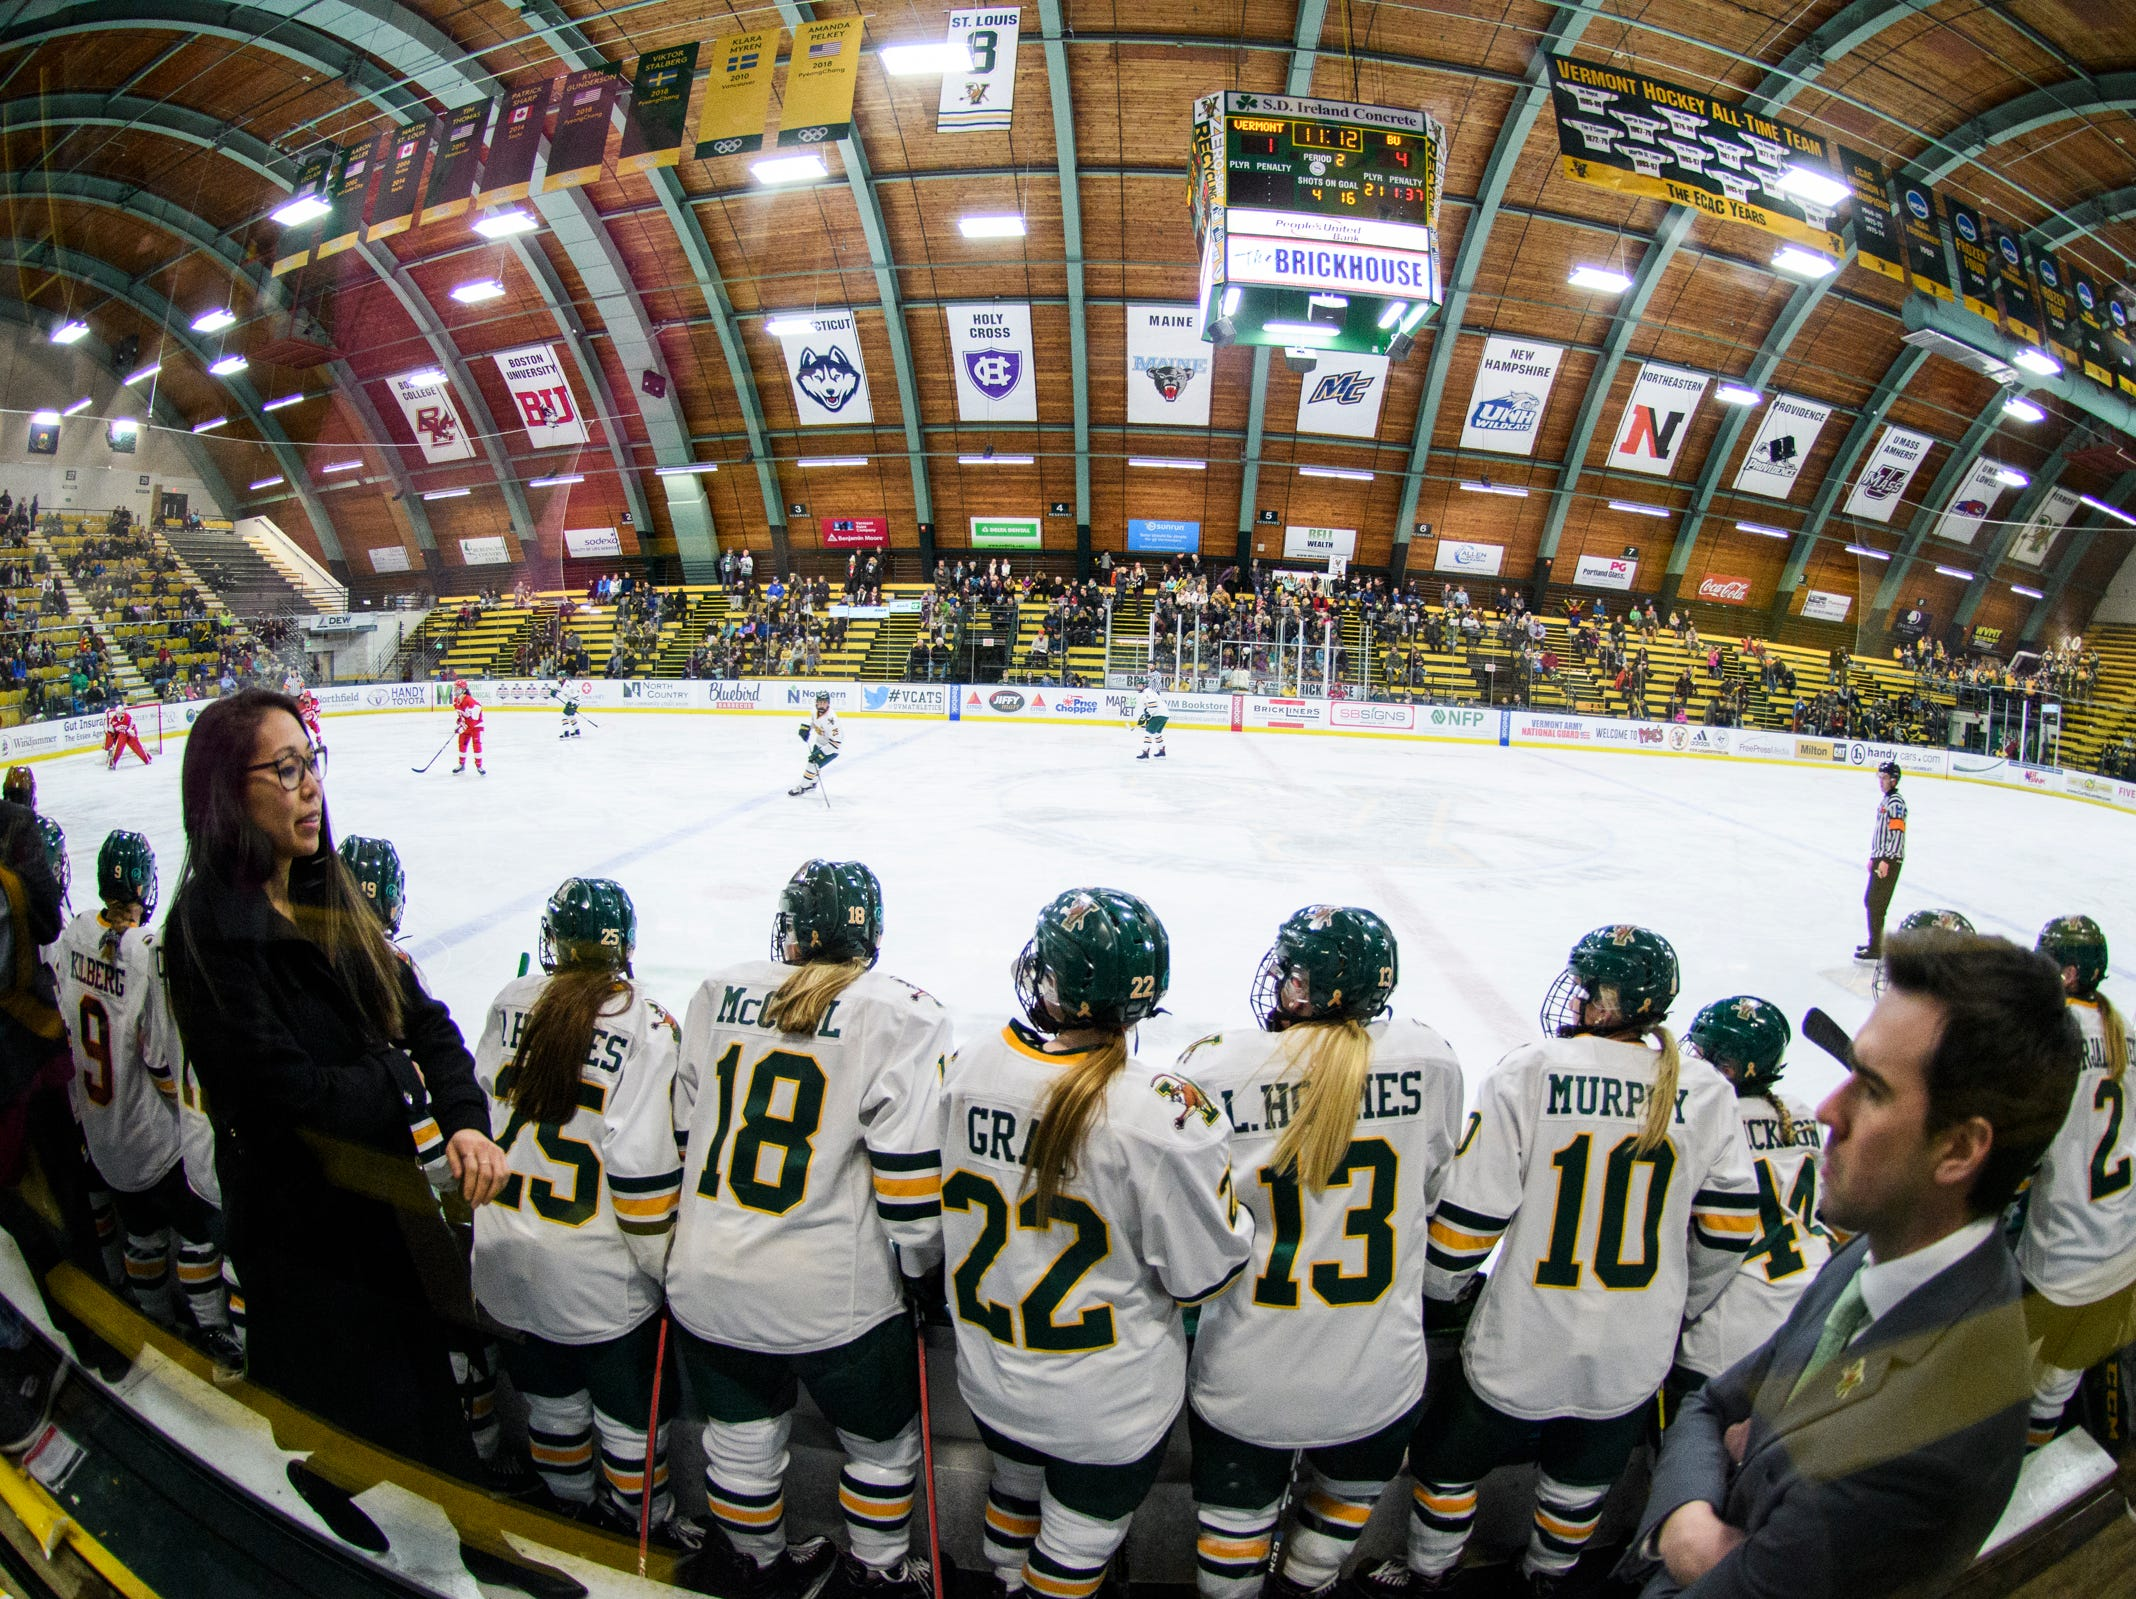 The Vermont bench watches the action on the ice during the women's hockey game between the Boston Terriers and the Vermont Catamounts at Gutterson Field House on Friday night February 1, 2019 in Burlington, Vermont.